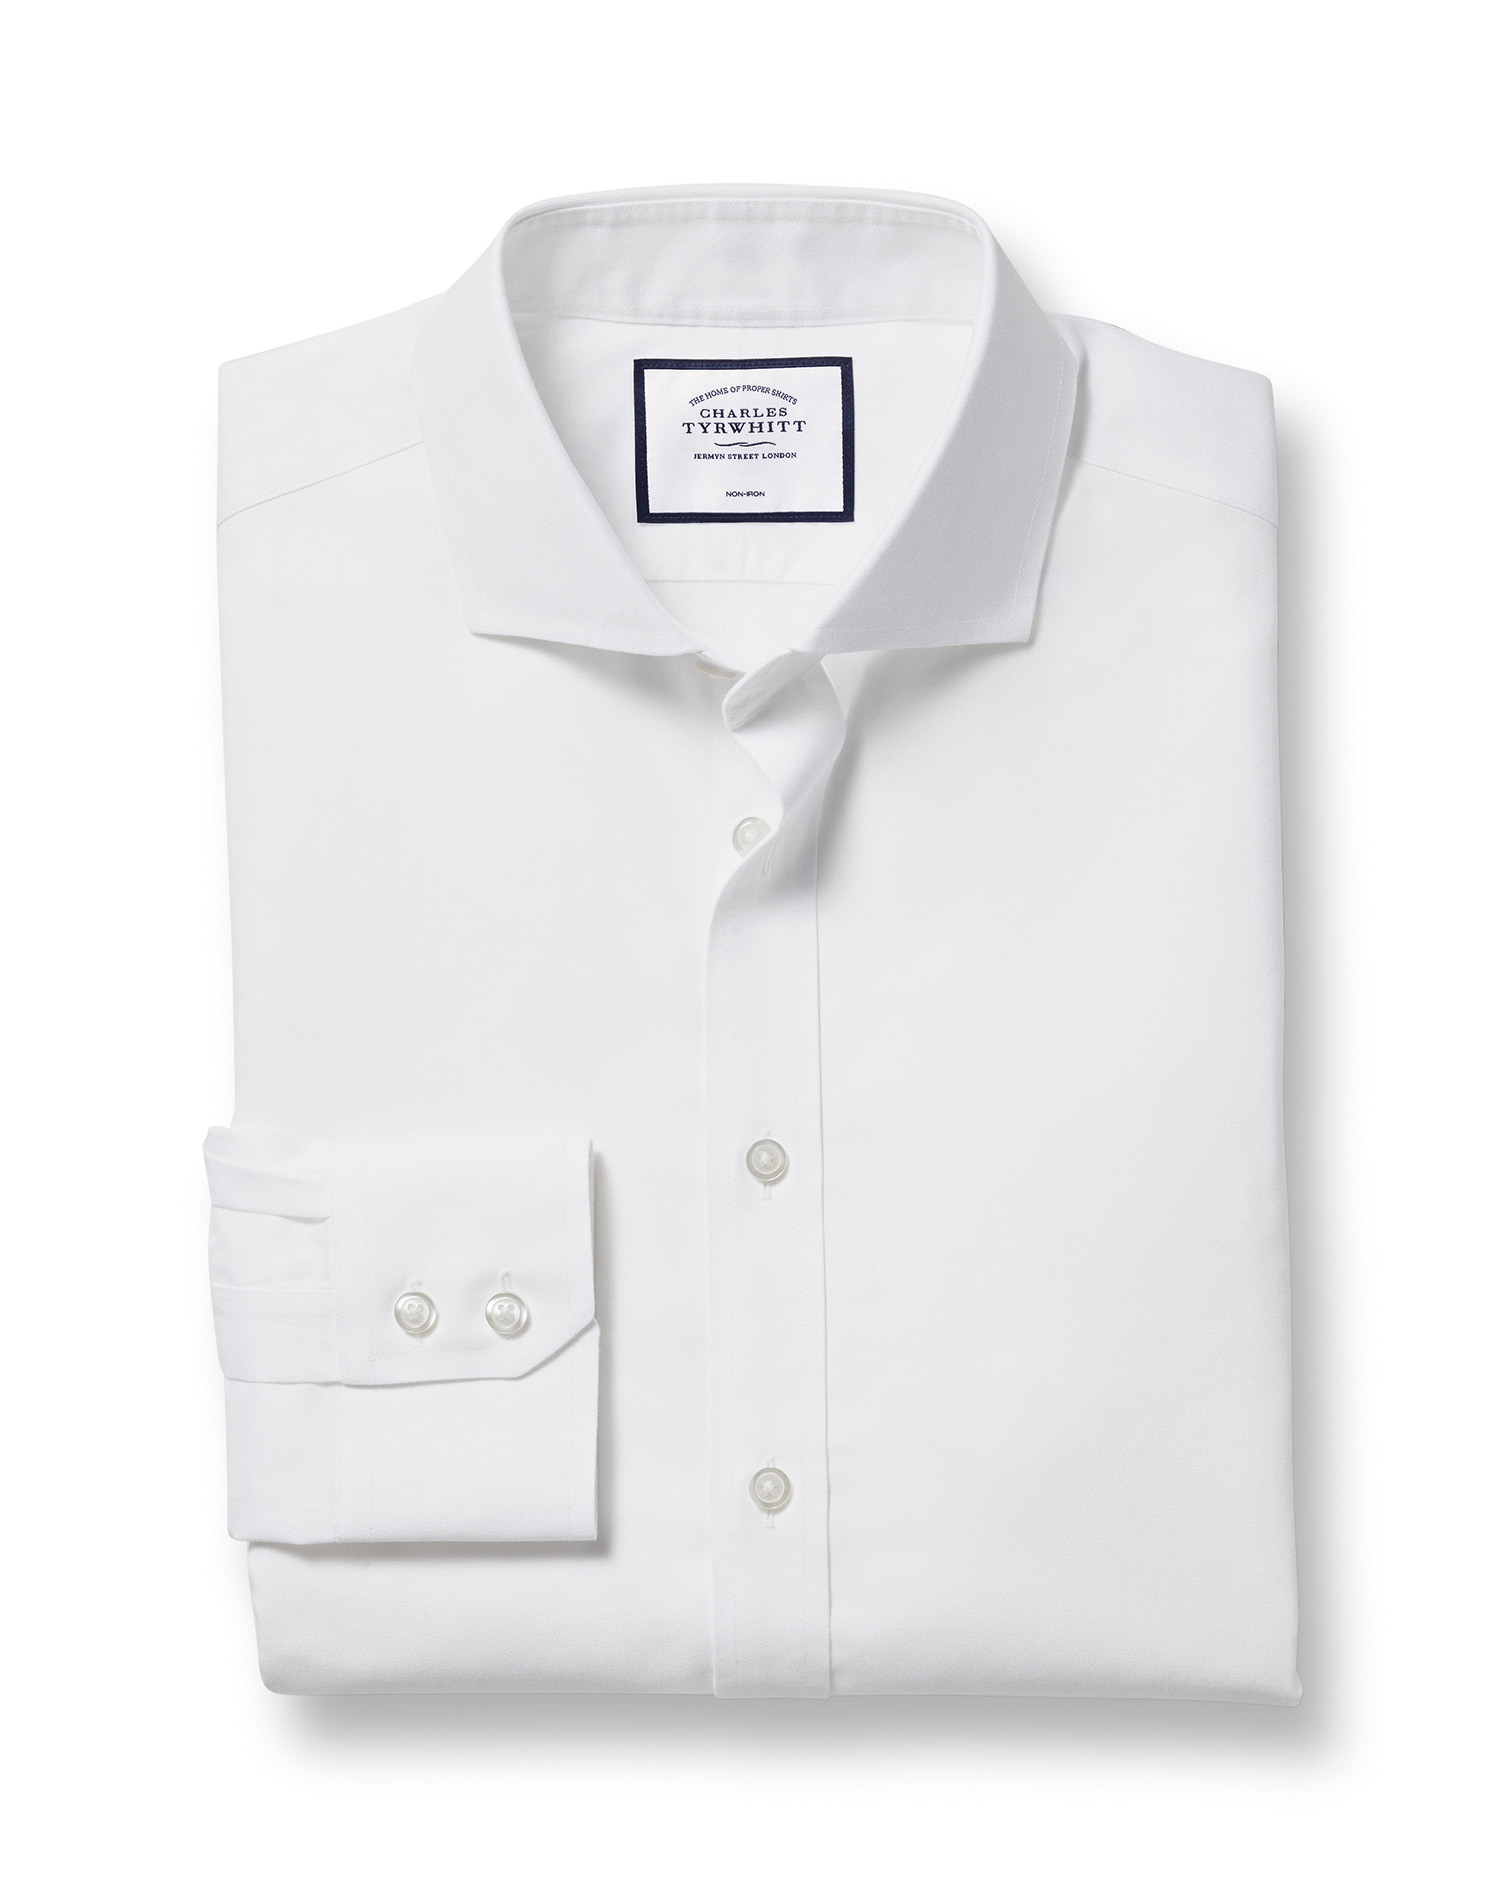 Extra Slim Fit Extreme Cutaway Non-Iron Twill White Cotton Formal Shirt Single Cuff Size 17/37 by Ch